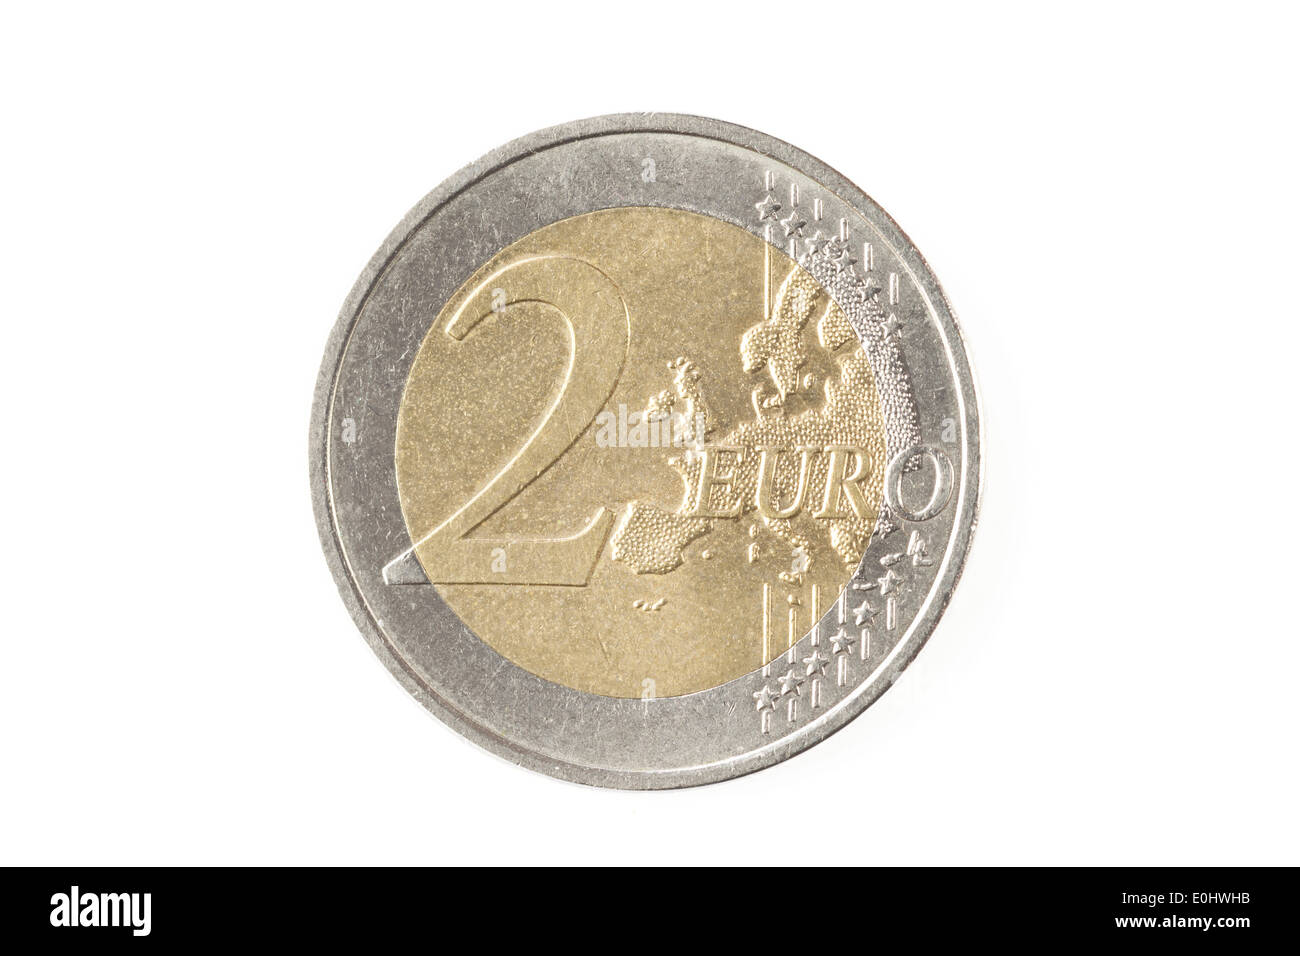 Two euro coin isolated on a white background - Stock Image